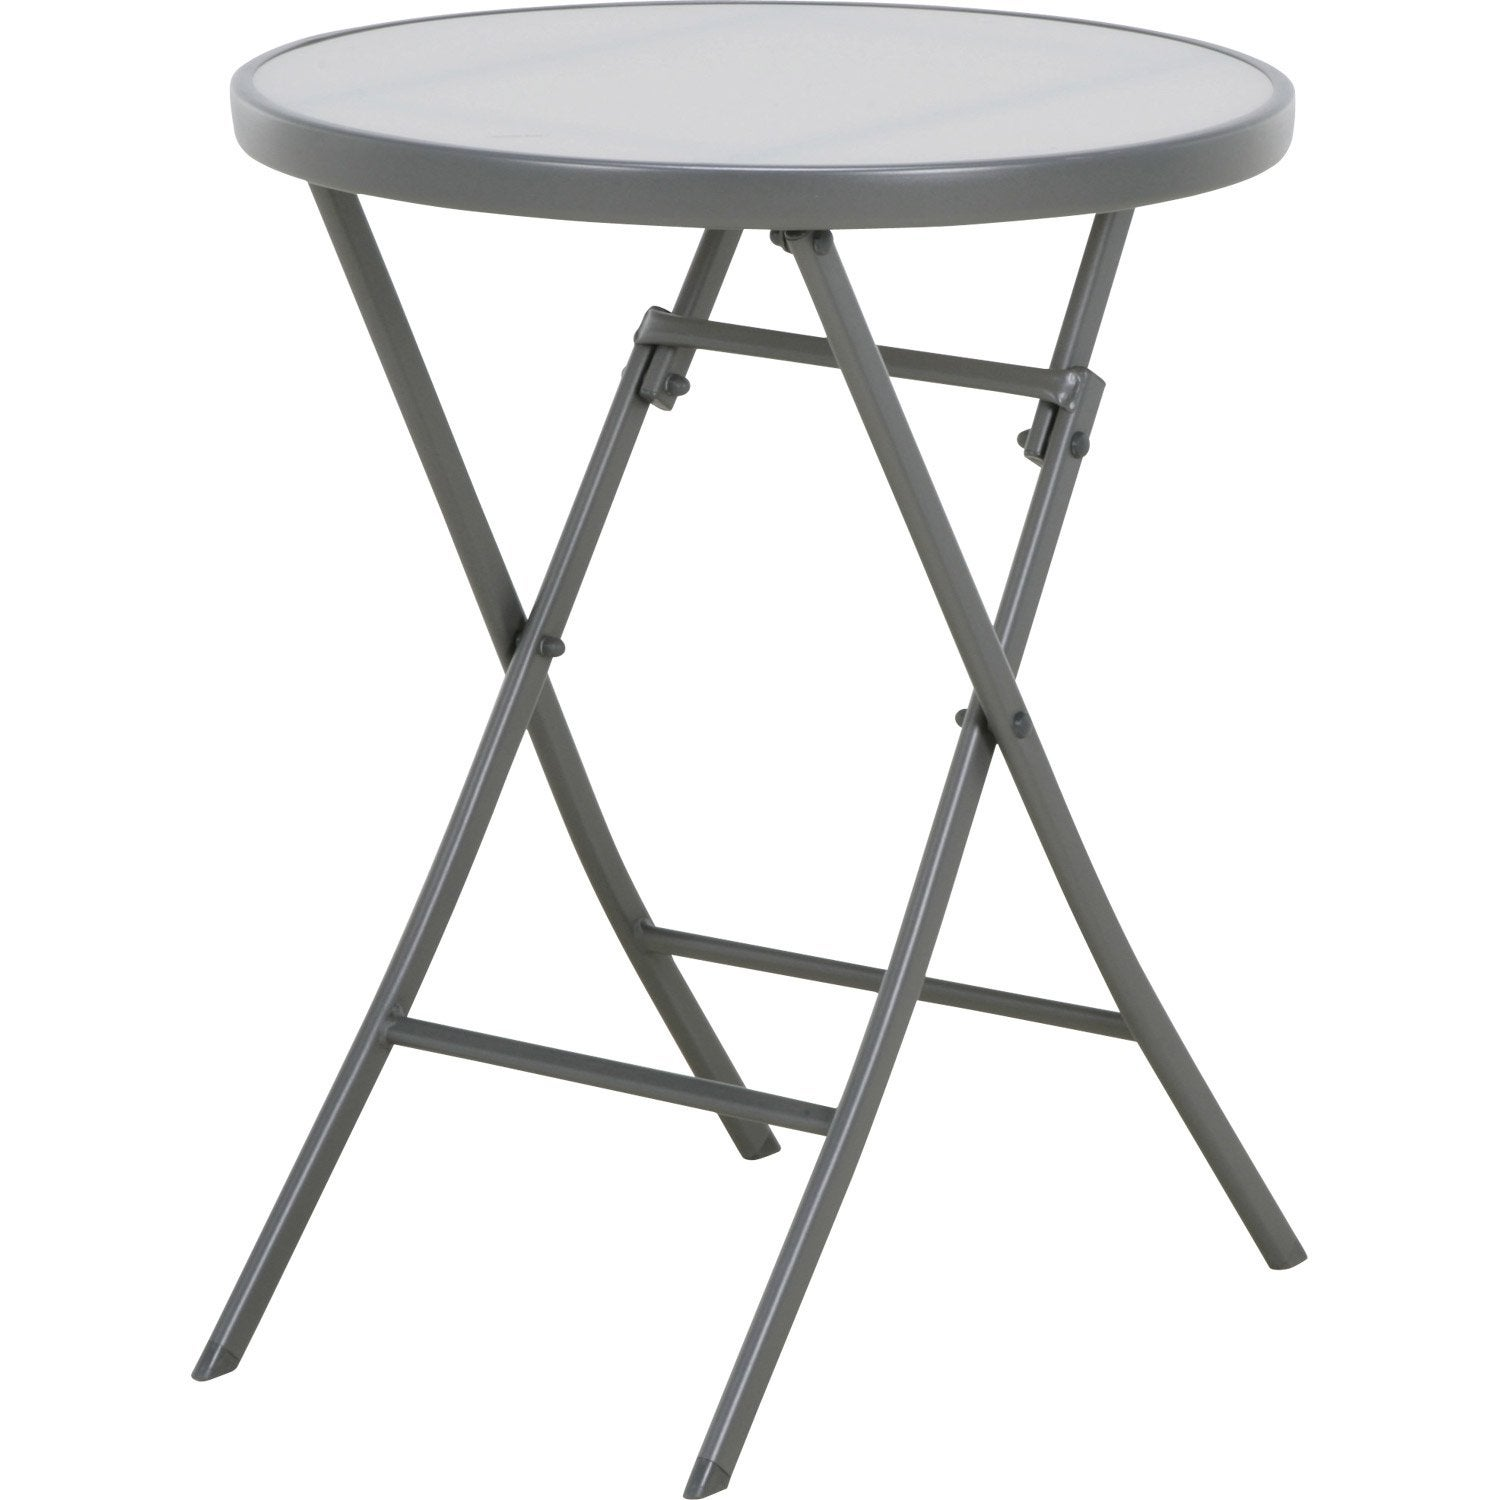 Table de jardin naterial denver ronde gris 2 personnes for Table 5 personnes